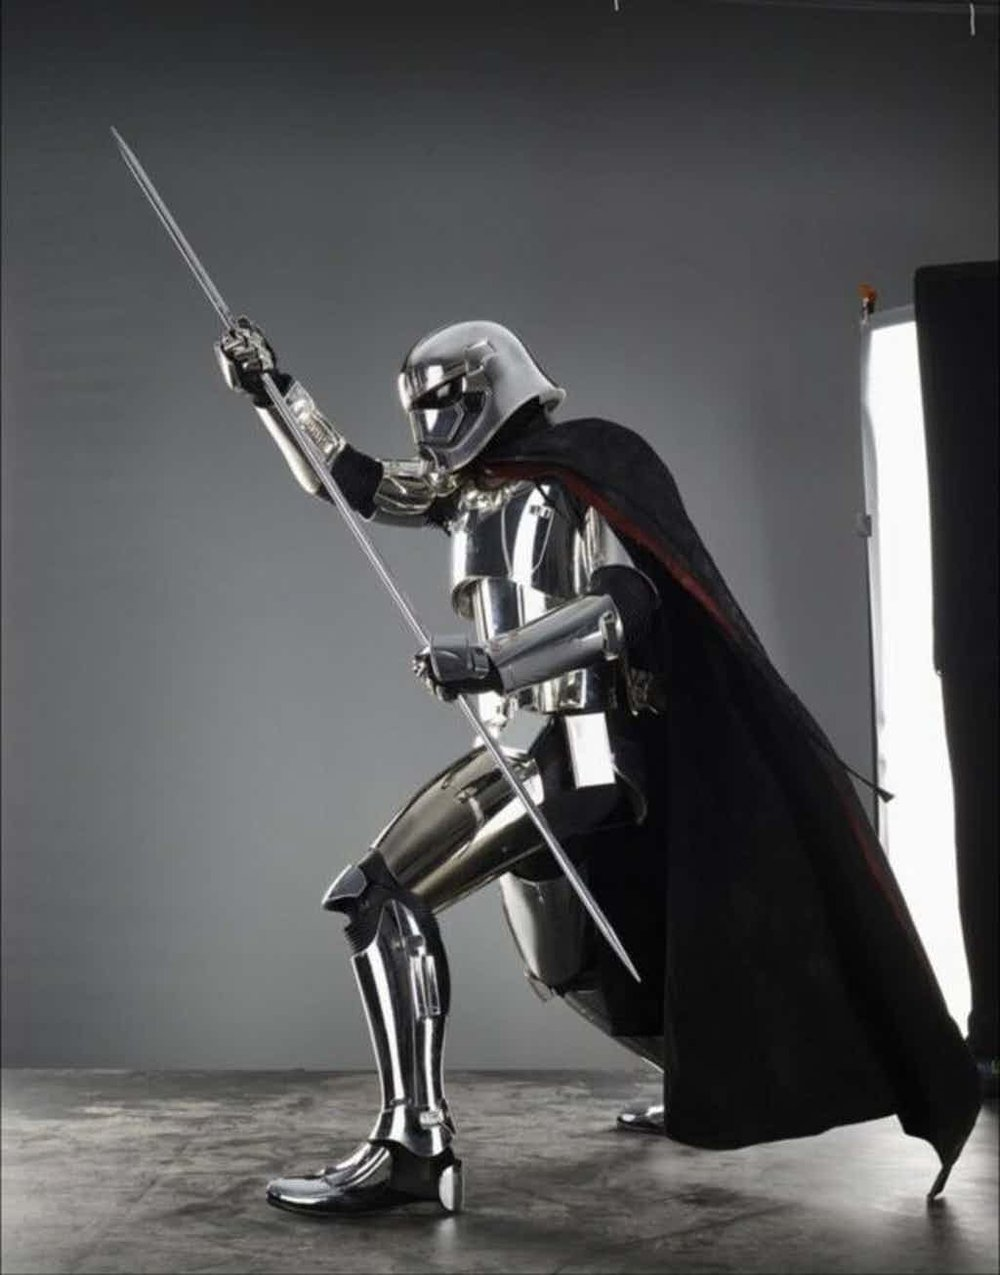 Star-Wars-The-Last-Jedi-Phasma-Posing-With-Staff.jpg